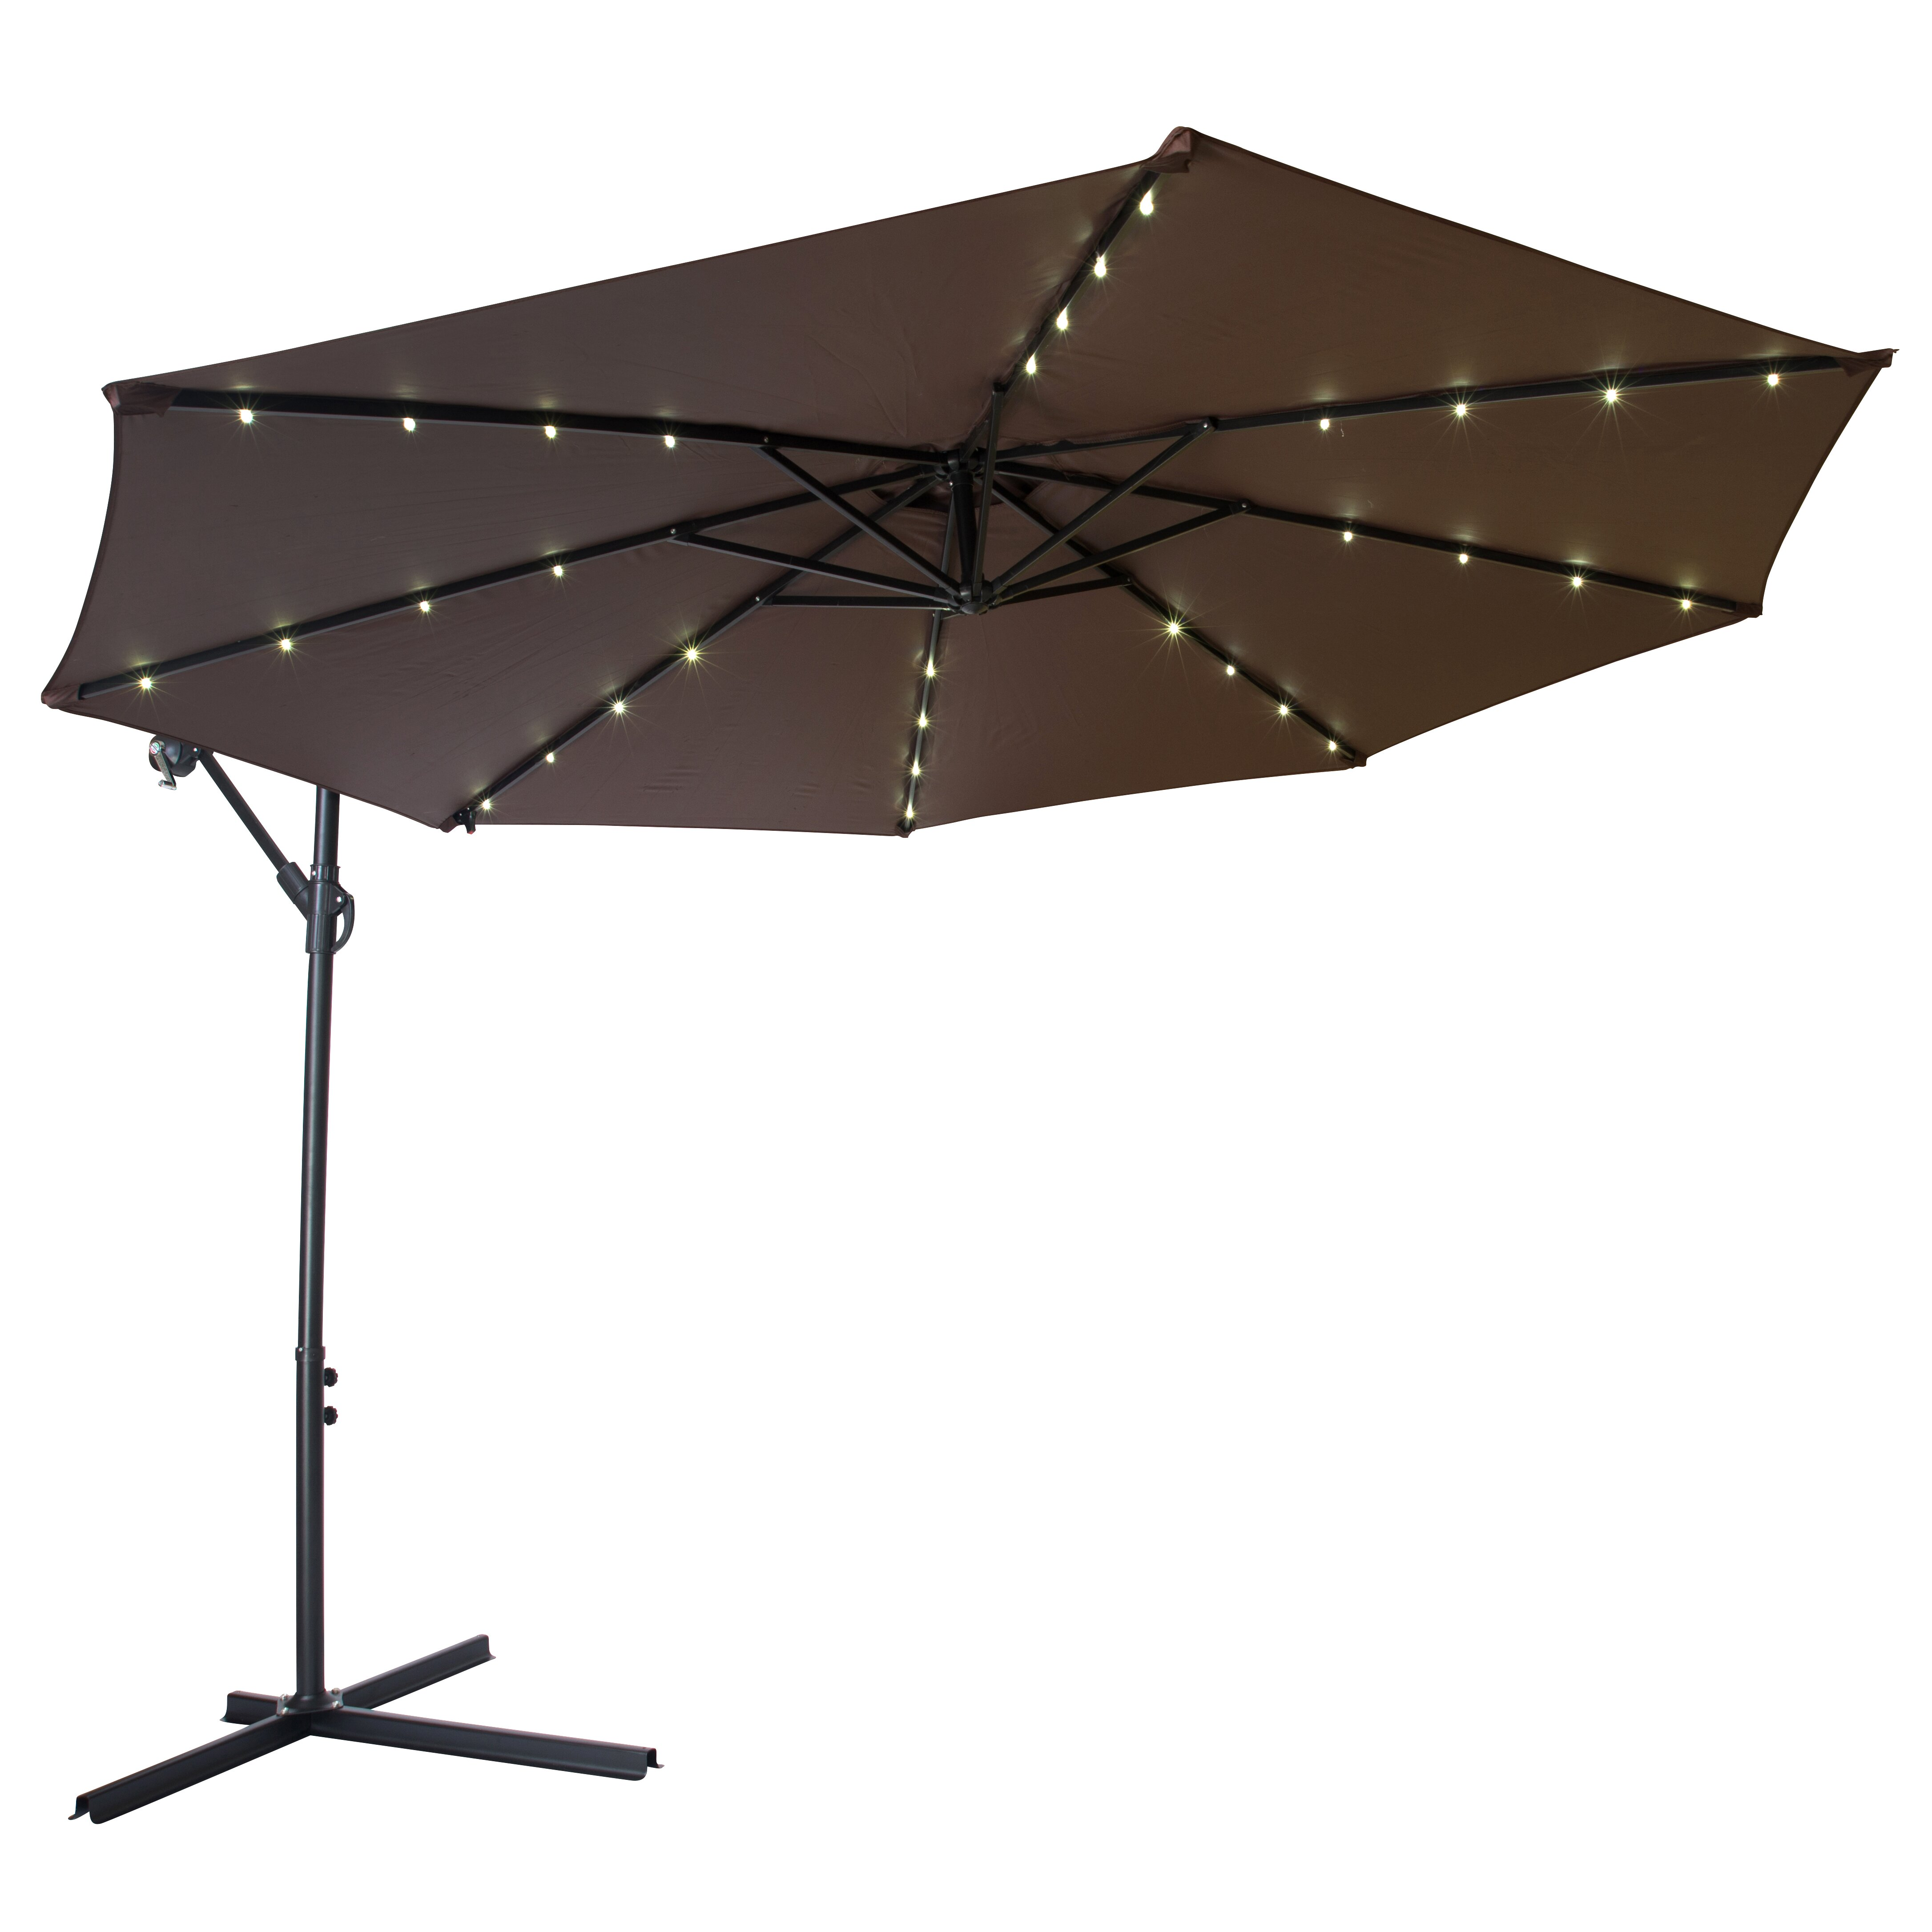 Trademark Innovations 10 Deluxe Cantilever Umbrella